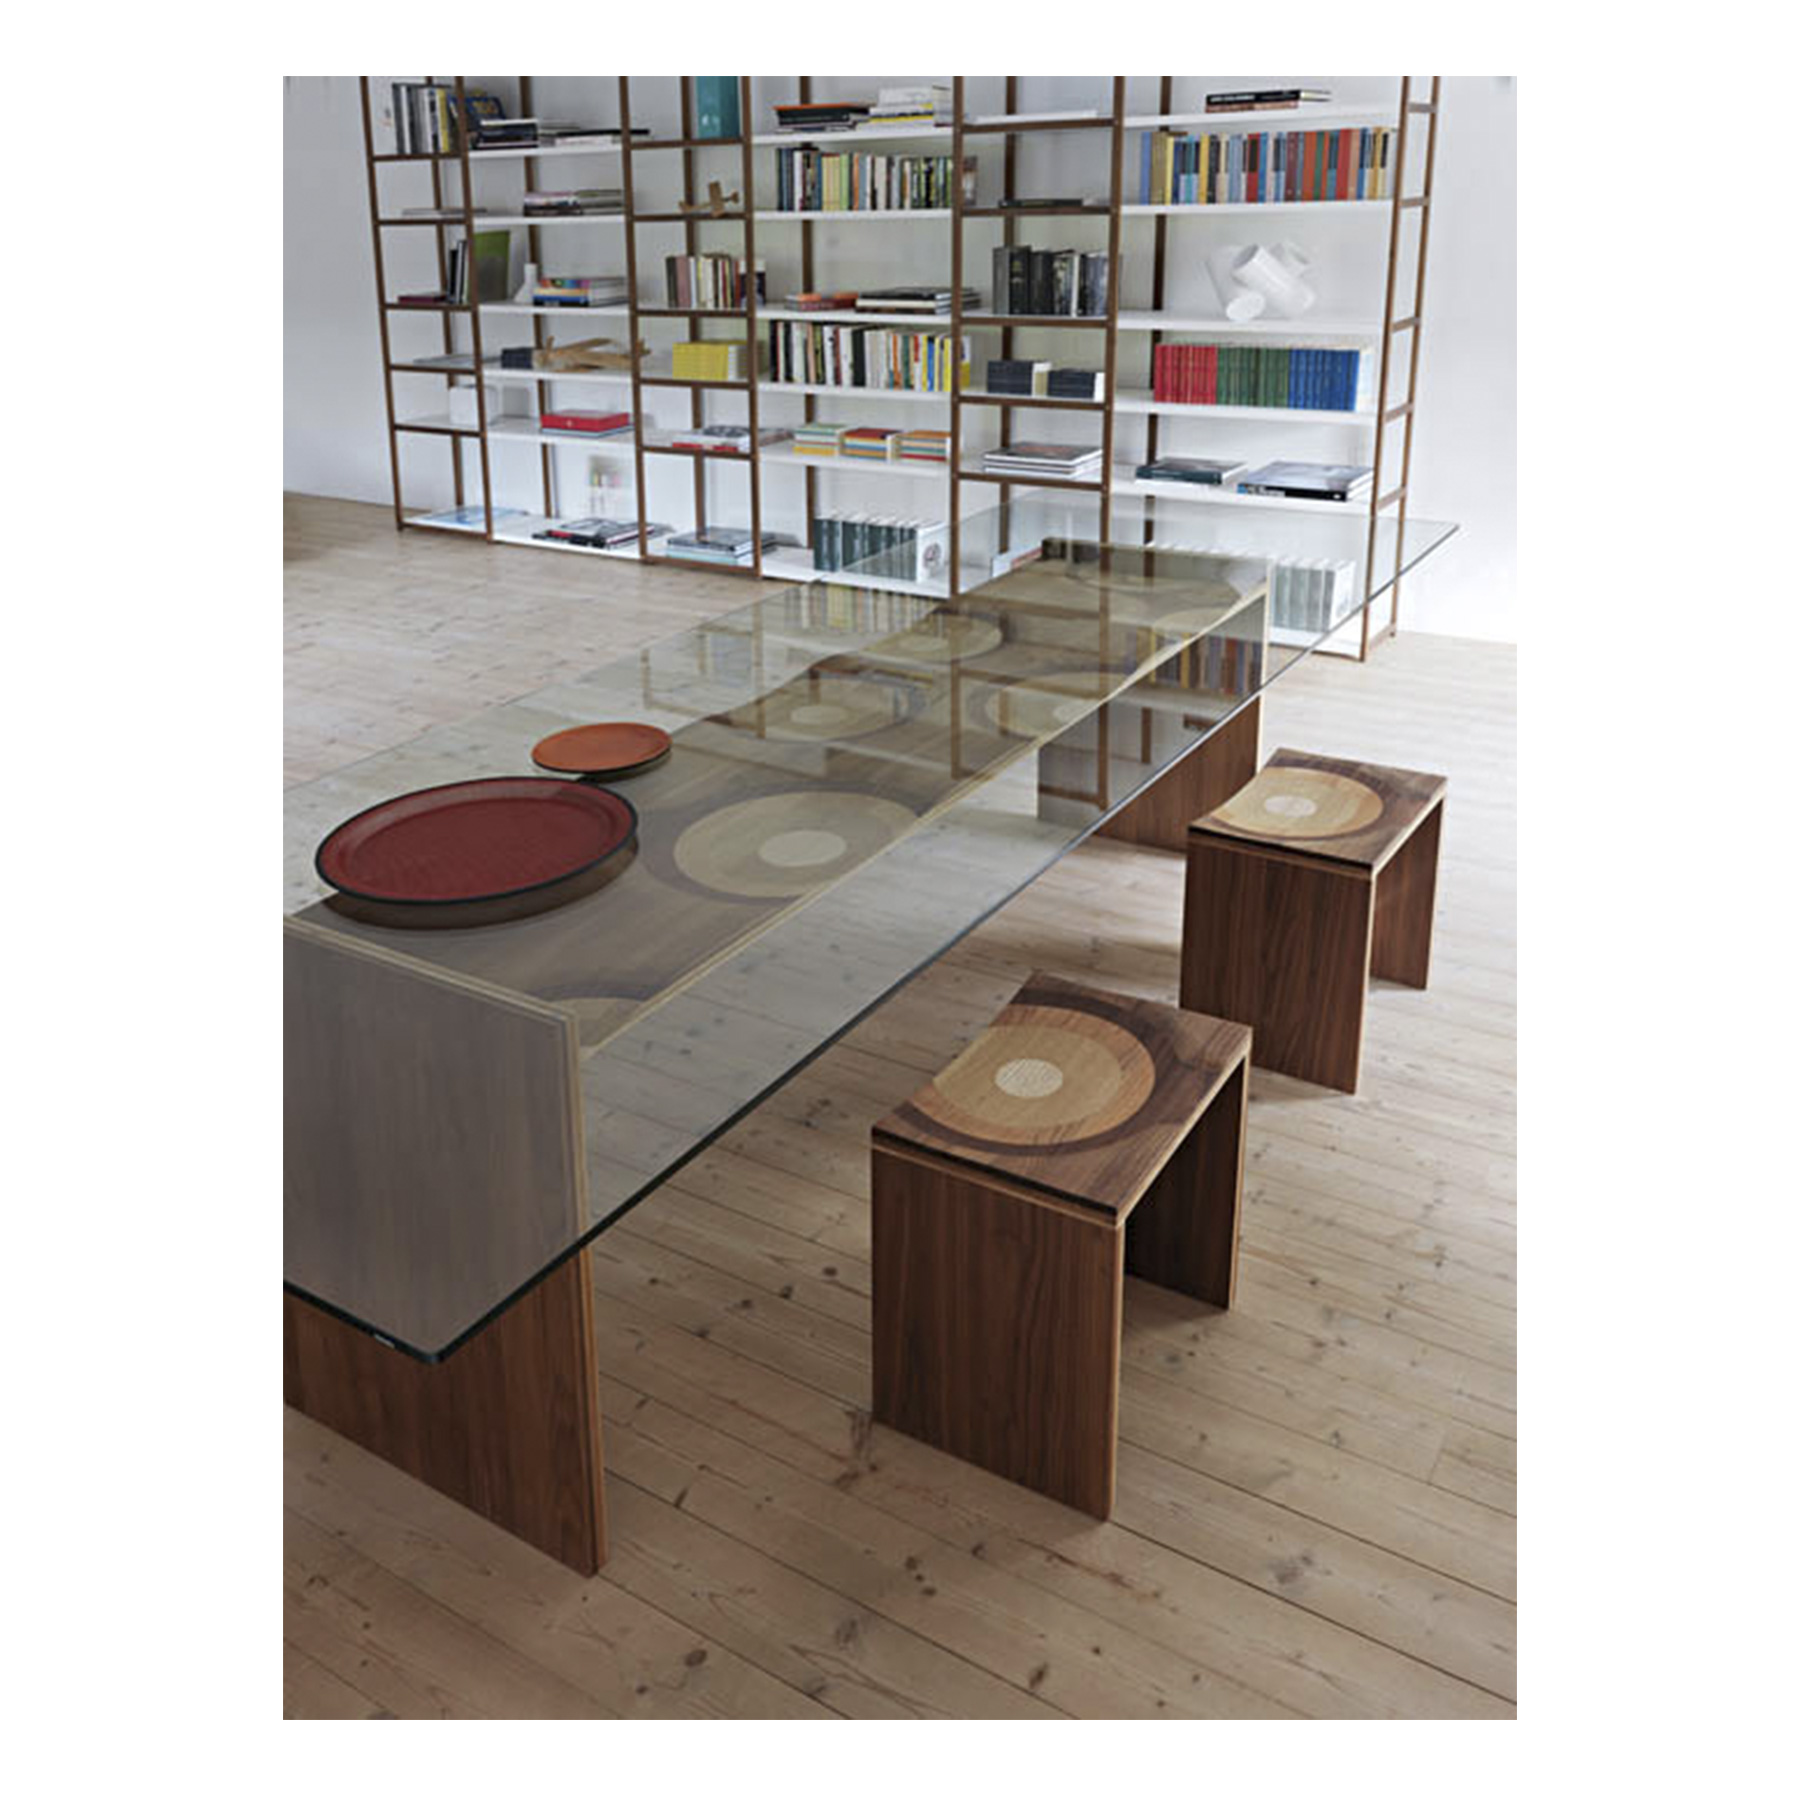 Ripples Dining Table - <p>The Ripples bench by Toyo Ito, winner of the 2004 Compasso d'Oro, has blossomed into a collection of different furniture types. Amongst them, we may highlight the Ripples table, featuring a transparent glass table top that presents its impressive structure, fabricated with a laminated composite of five different solid woods namely, walnut, mahogany, cherry, oak and ash. The fibre colours and directions are purposefully defined to produce an elegant polychromatic effect. The top is in tempered glass, thickness 12 mm. This unique and poetic woodwork, created within a strict aesthetic framework, is reminiscent of fluid motion, not unlike the ripple-effect produced by a stone tossed in the water.</p>  | Matter of Stuff